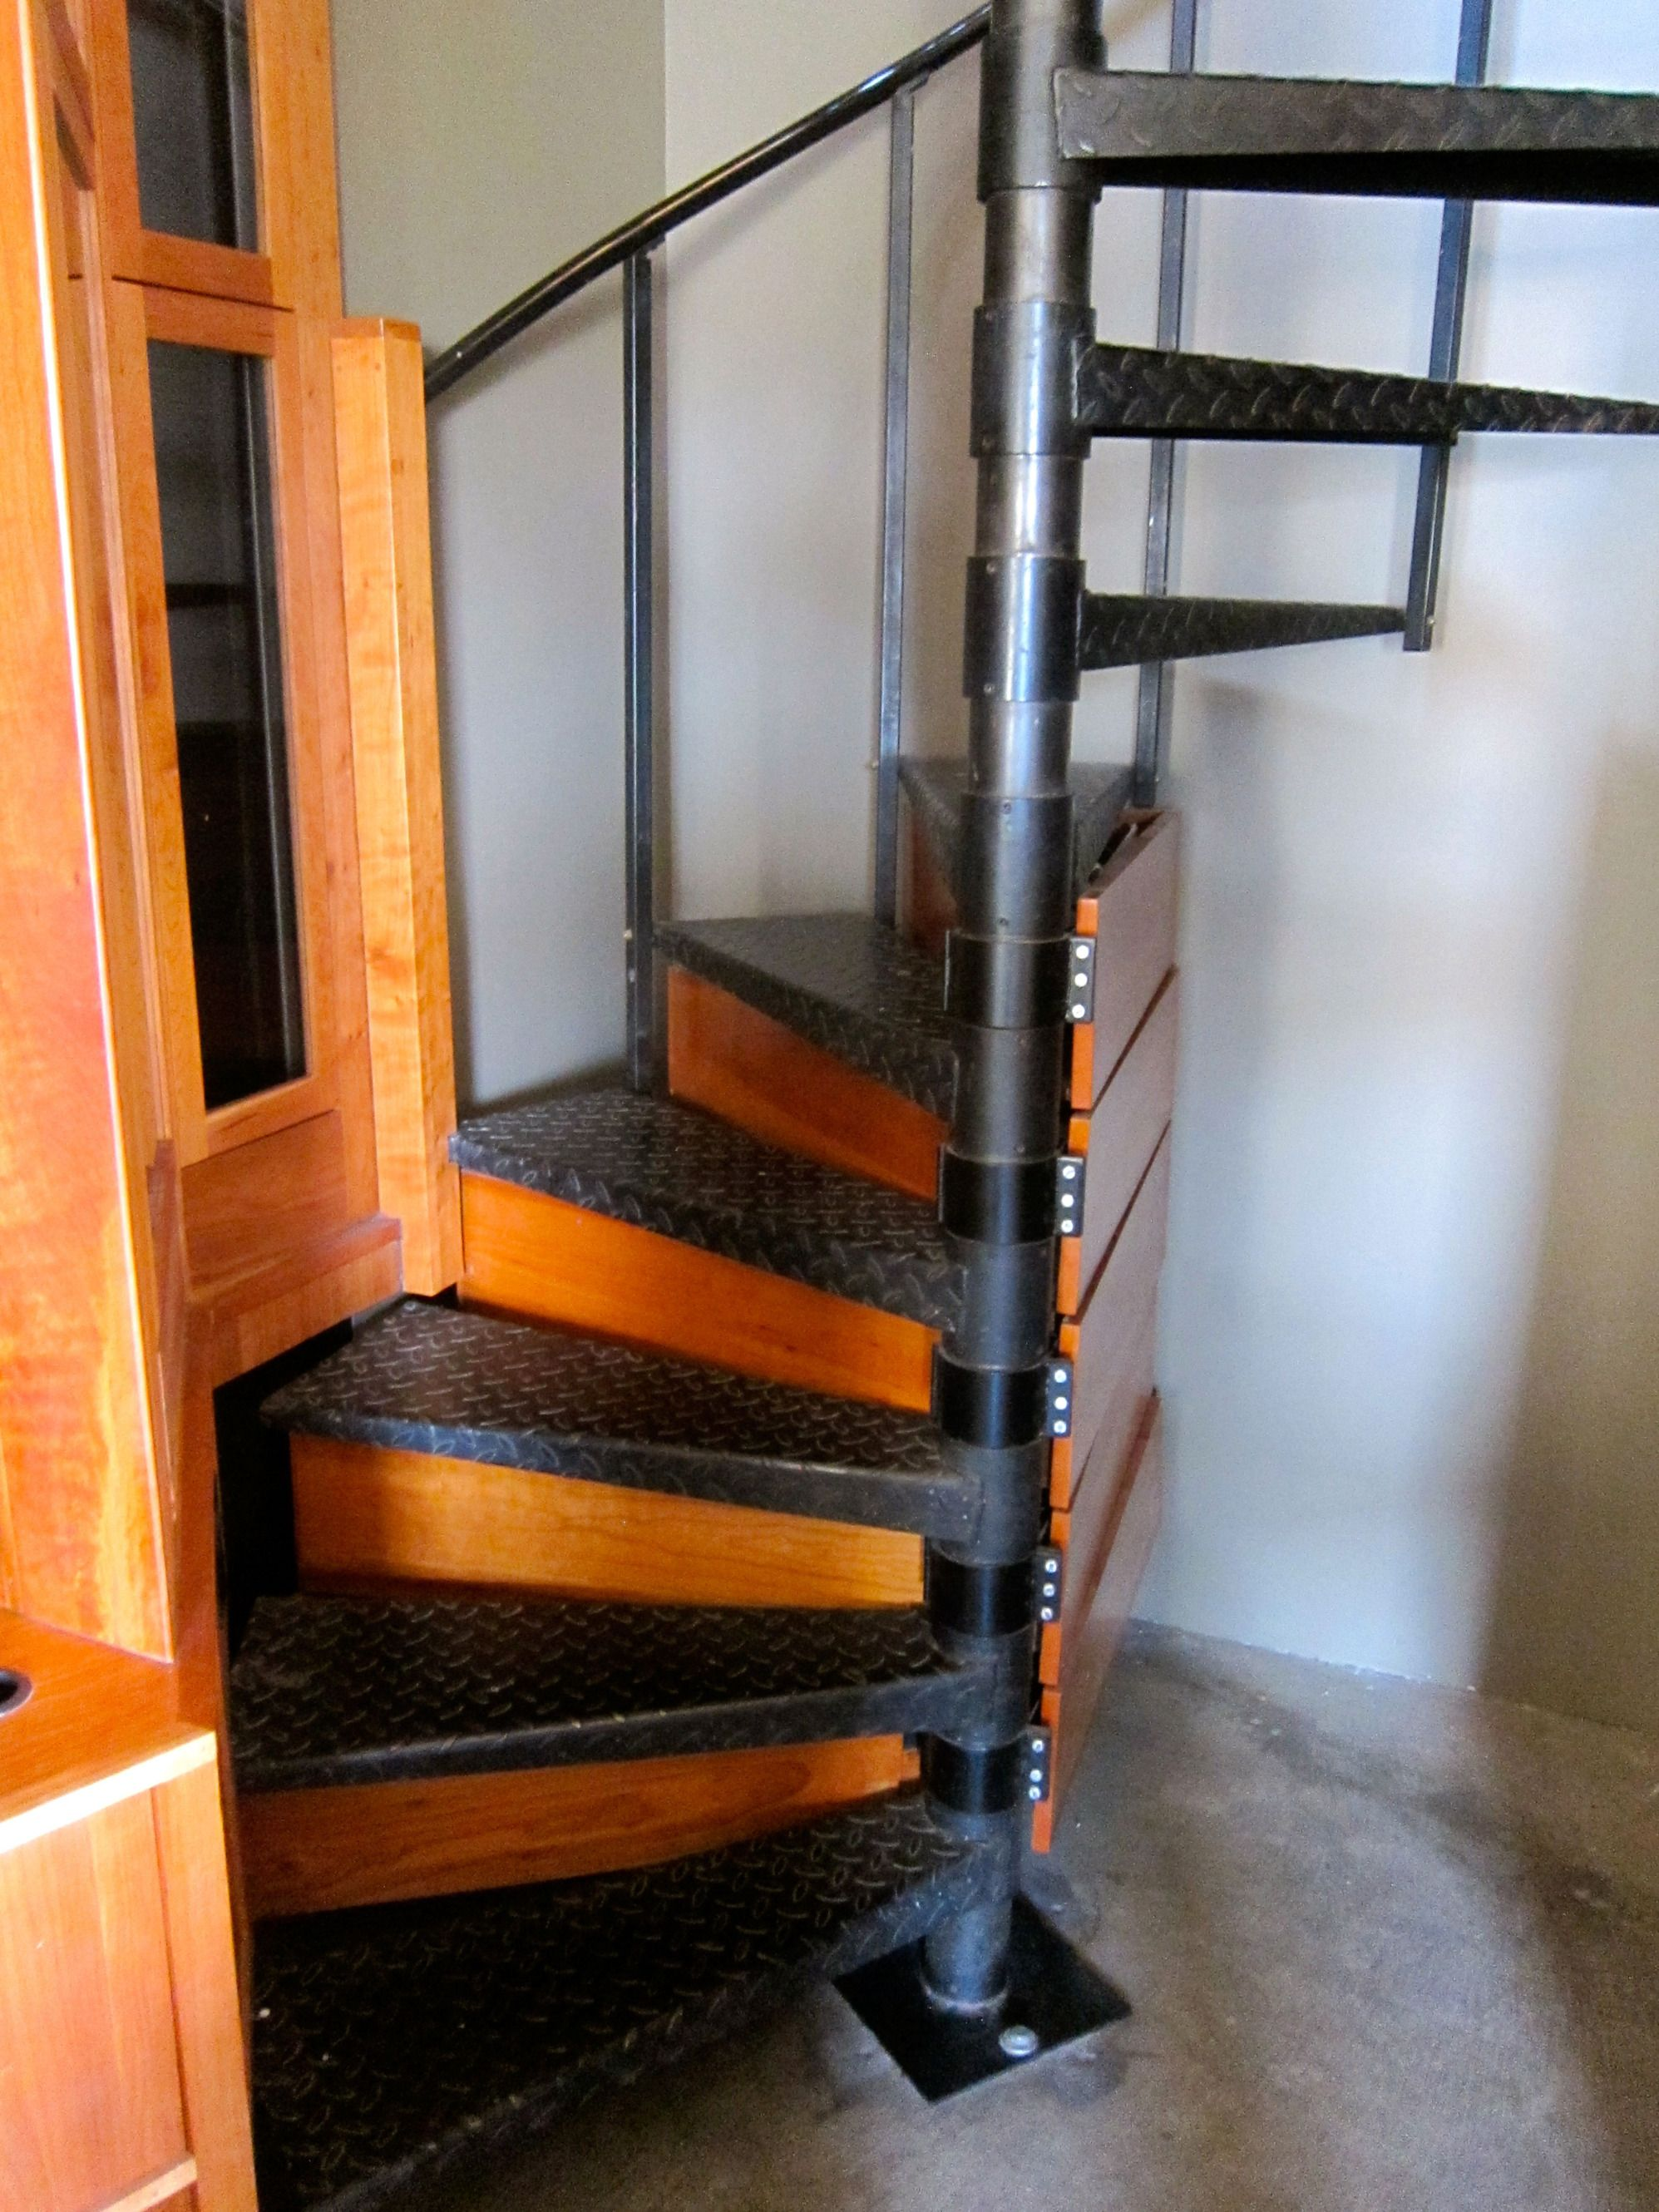 Storage In Spiral Staircase